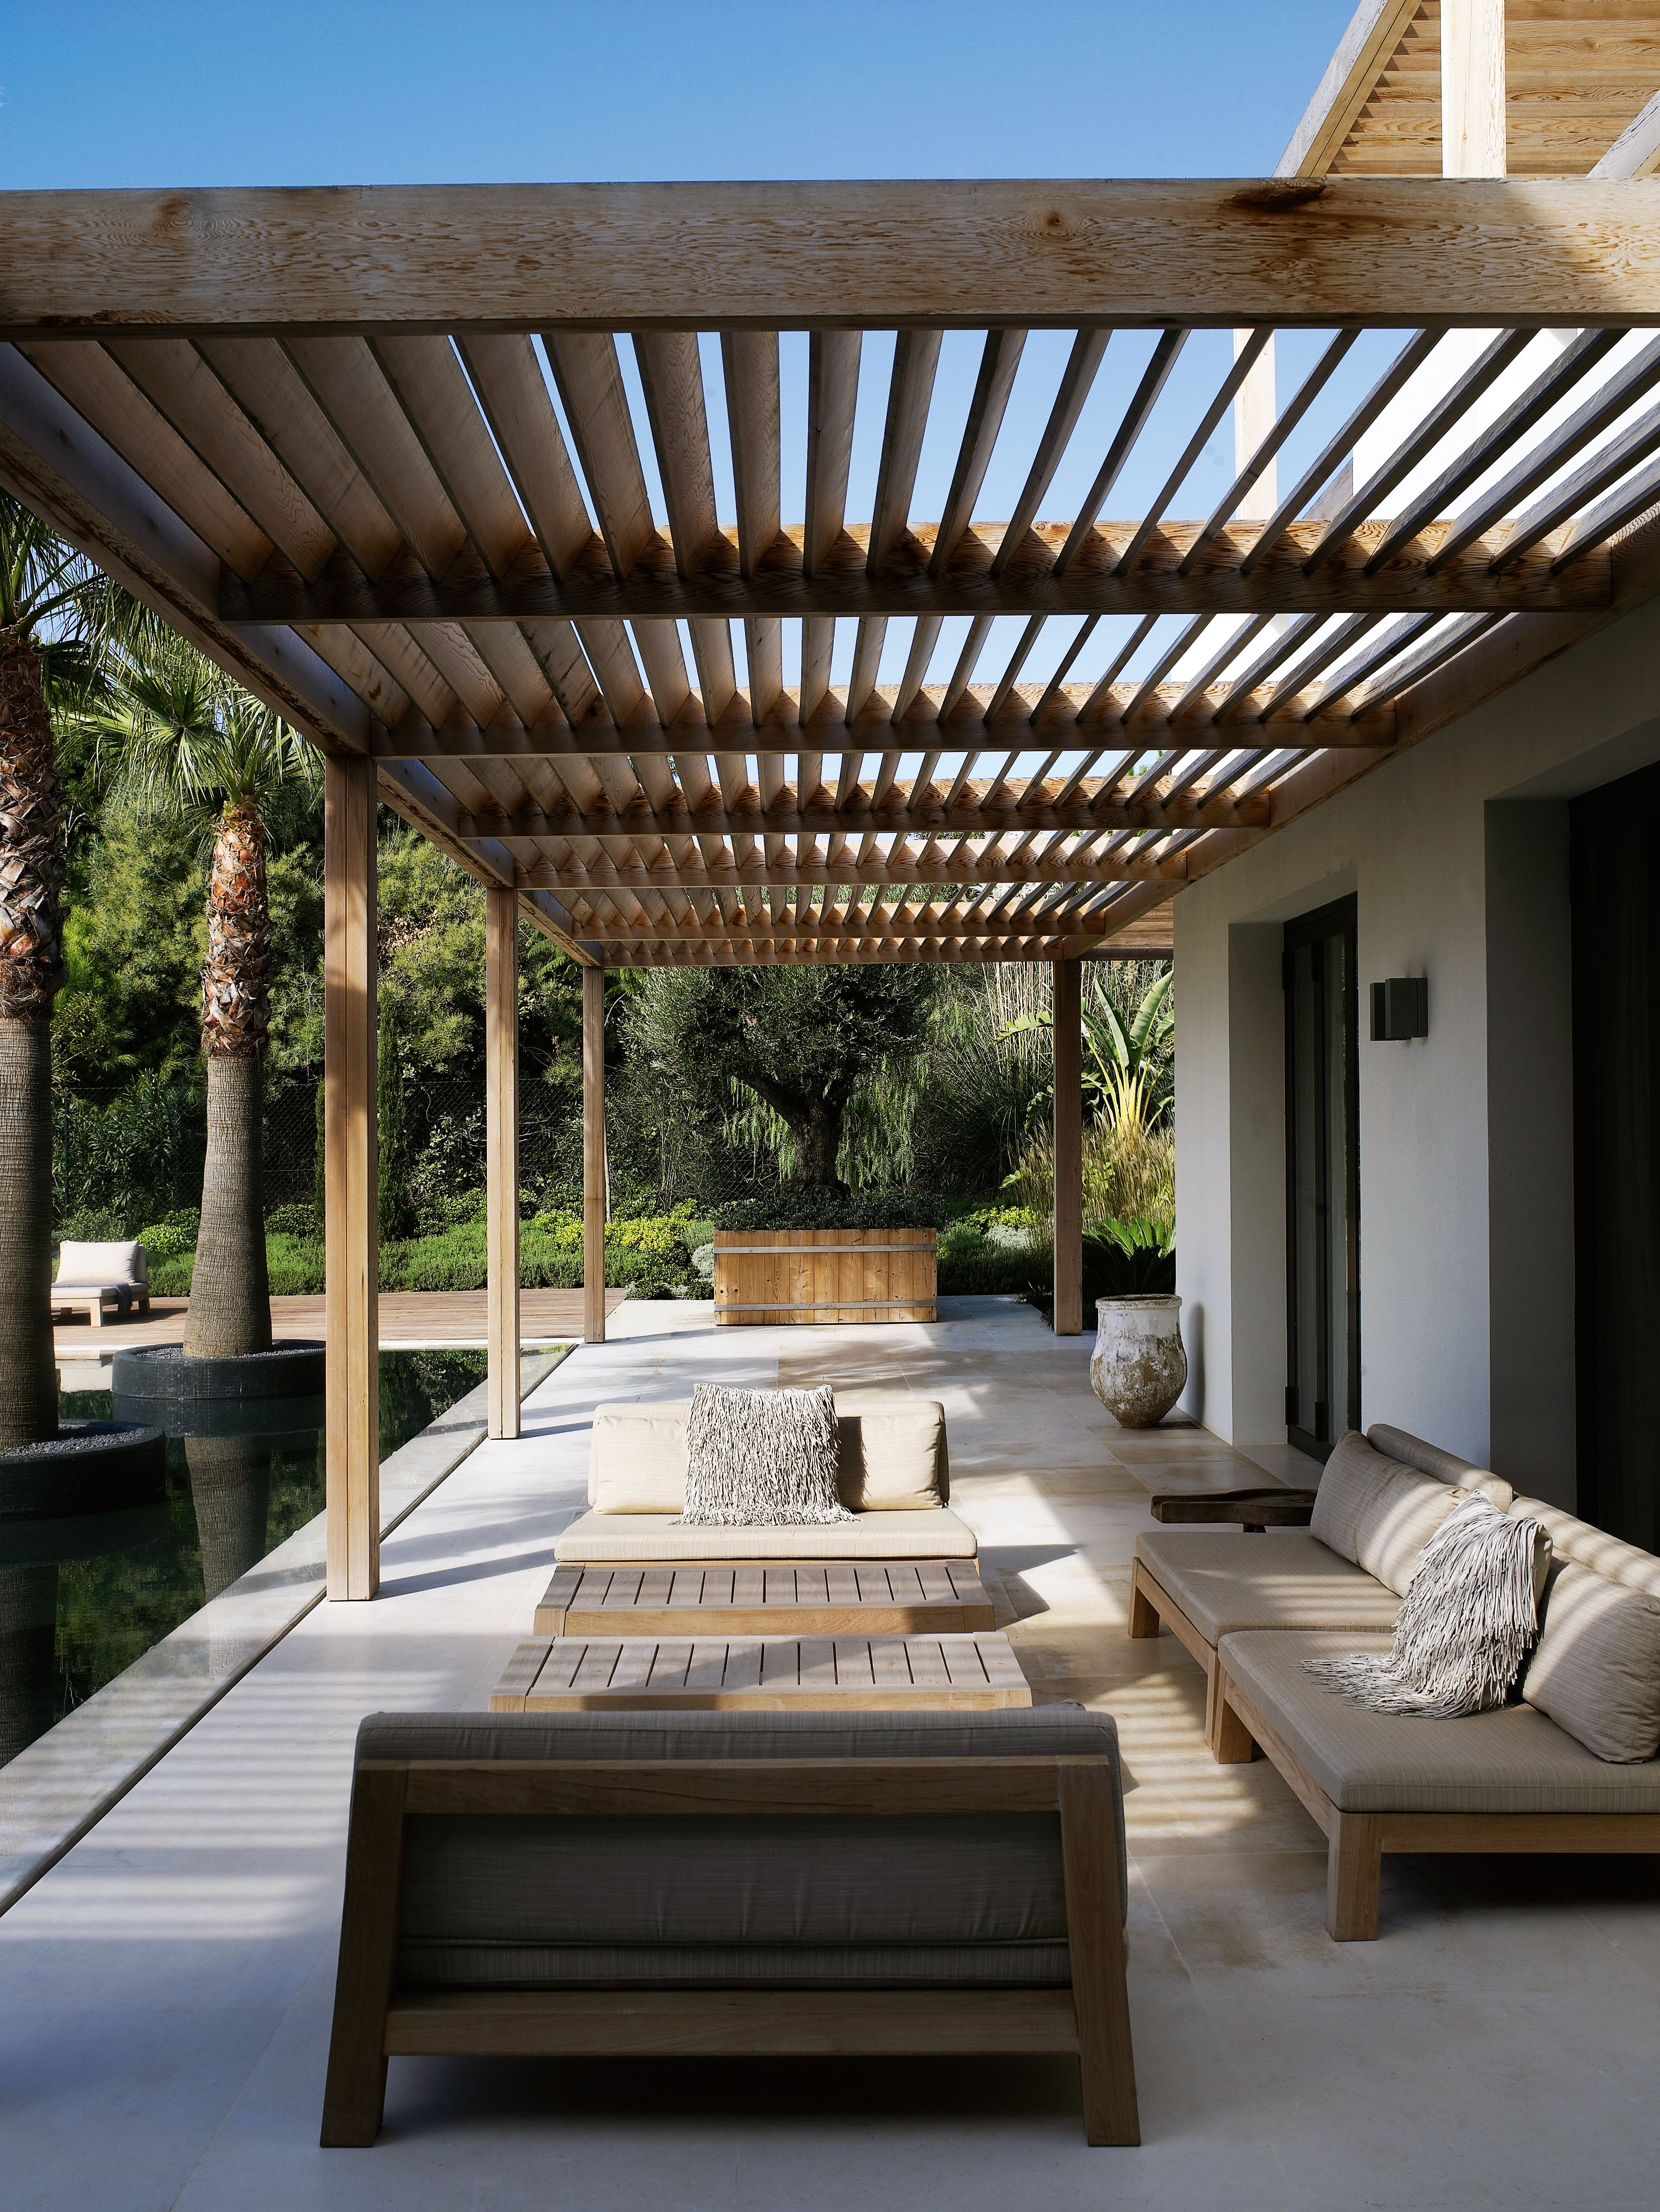 backyard long paio with wooden furniture and sunspot at the, Gartengerate ideen